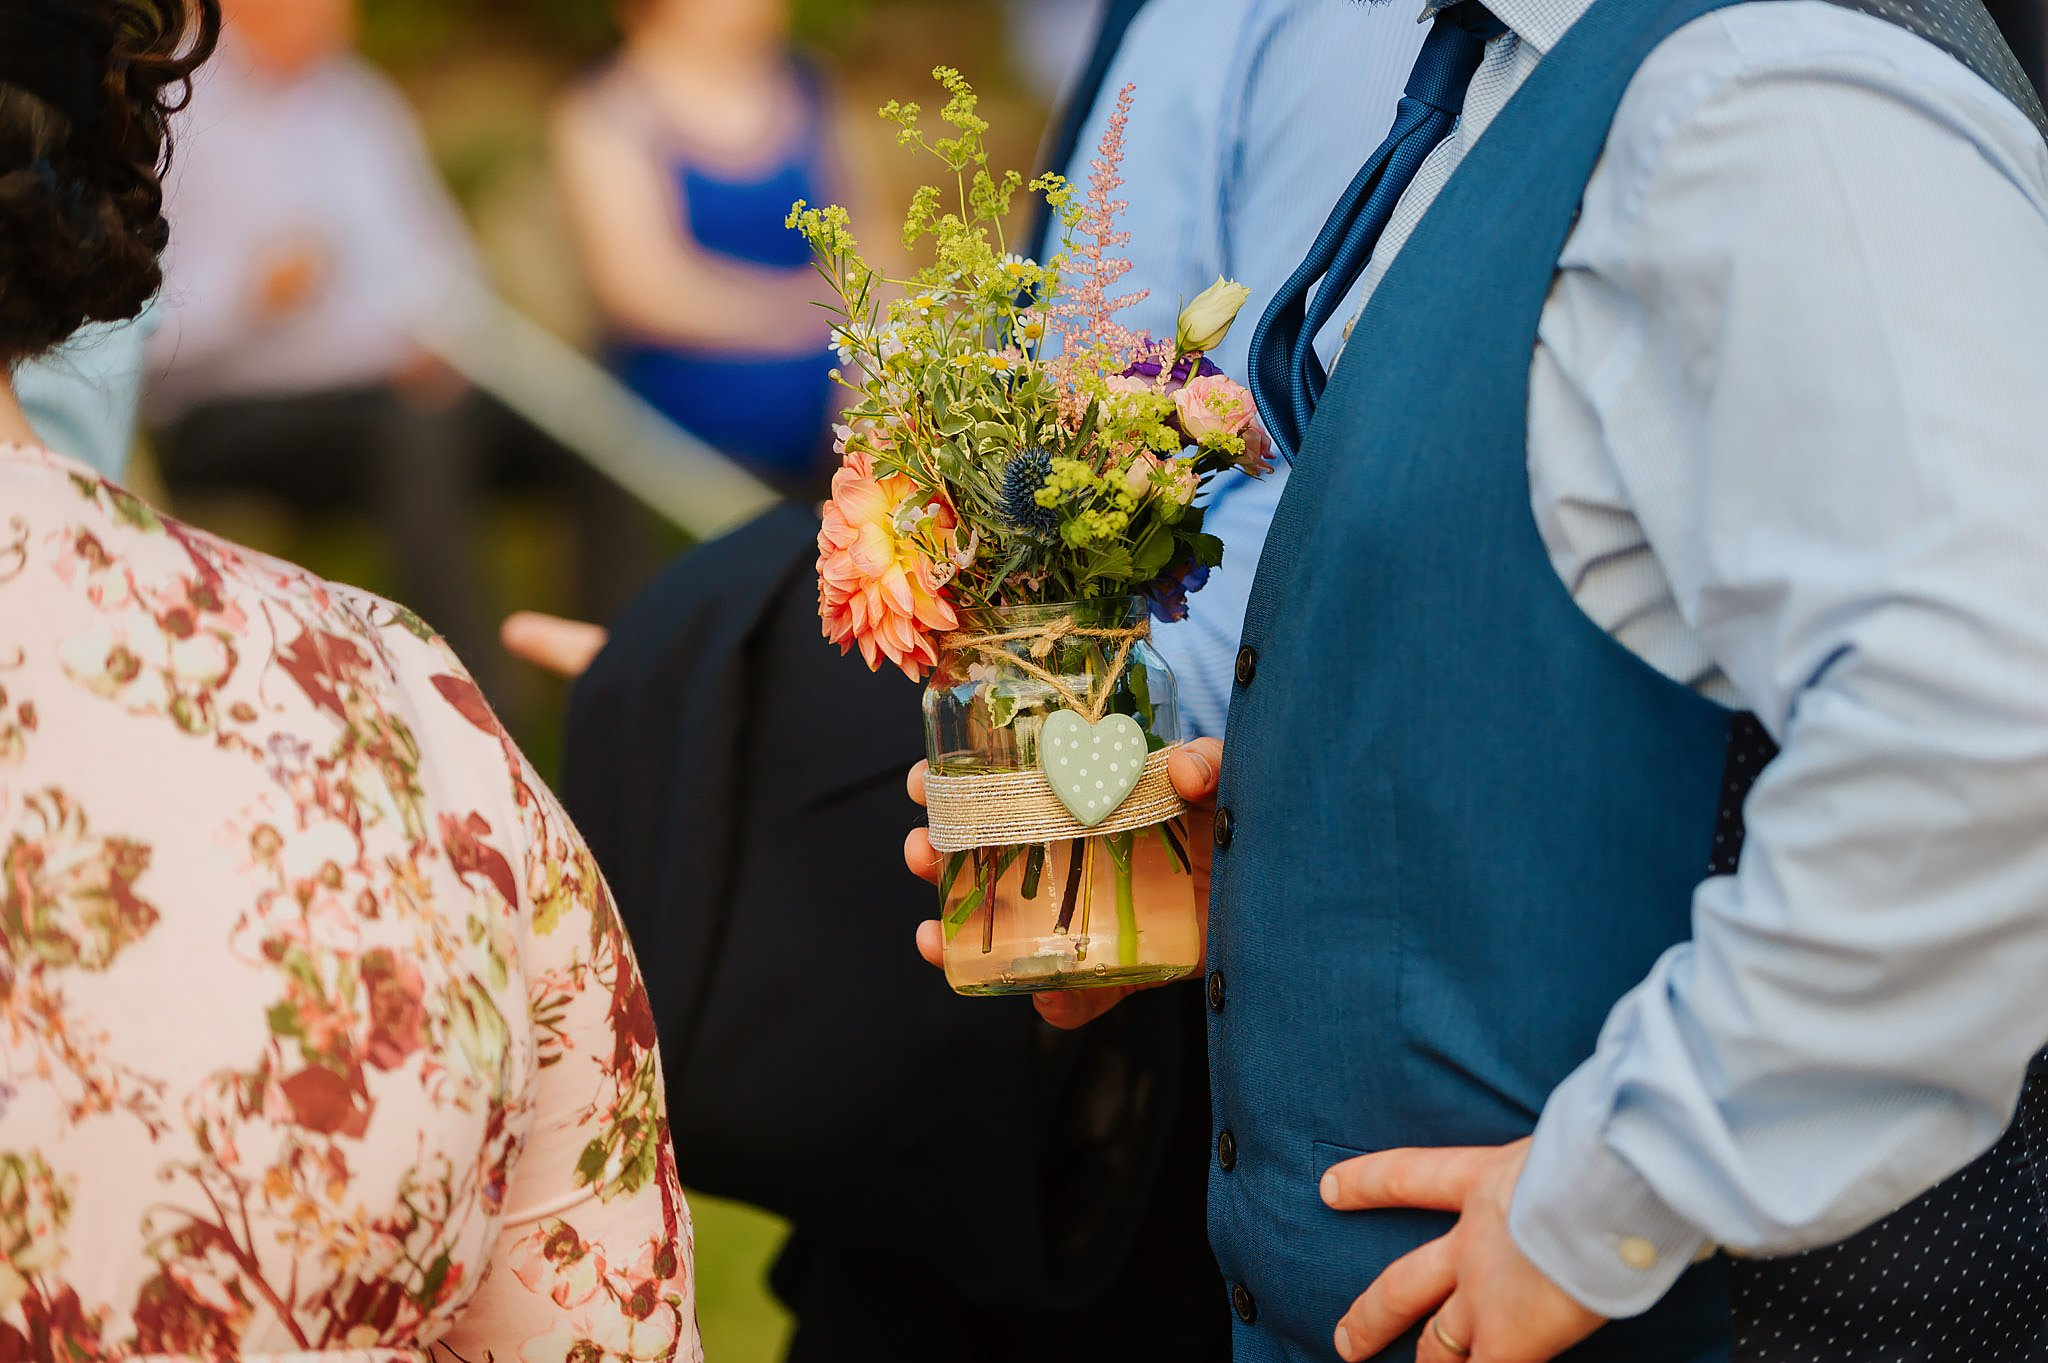 Wedding photography at Hellens Manor in Herefordshire, West Midlands | Shelley + Ian 94